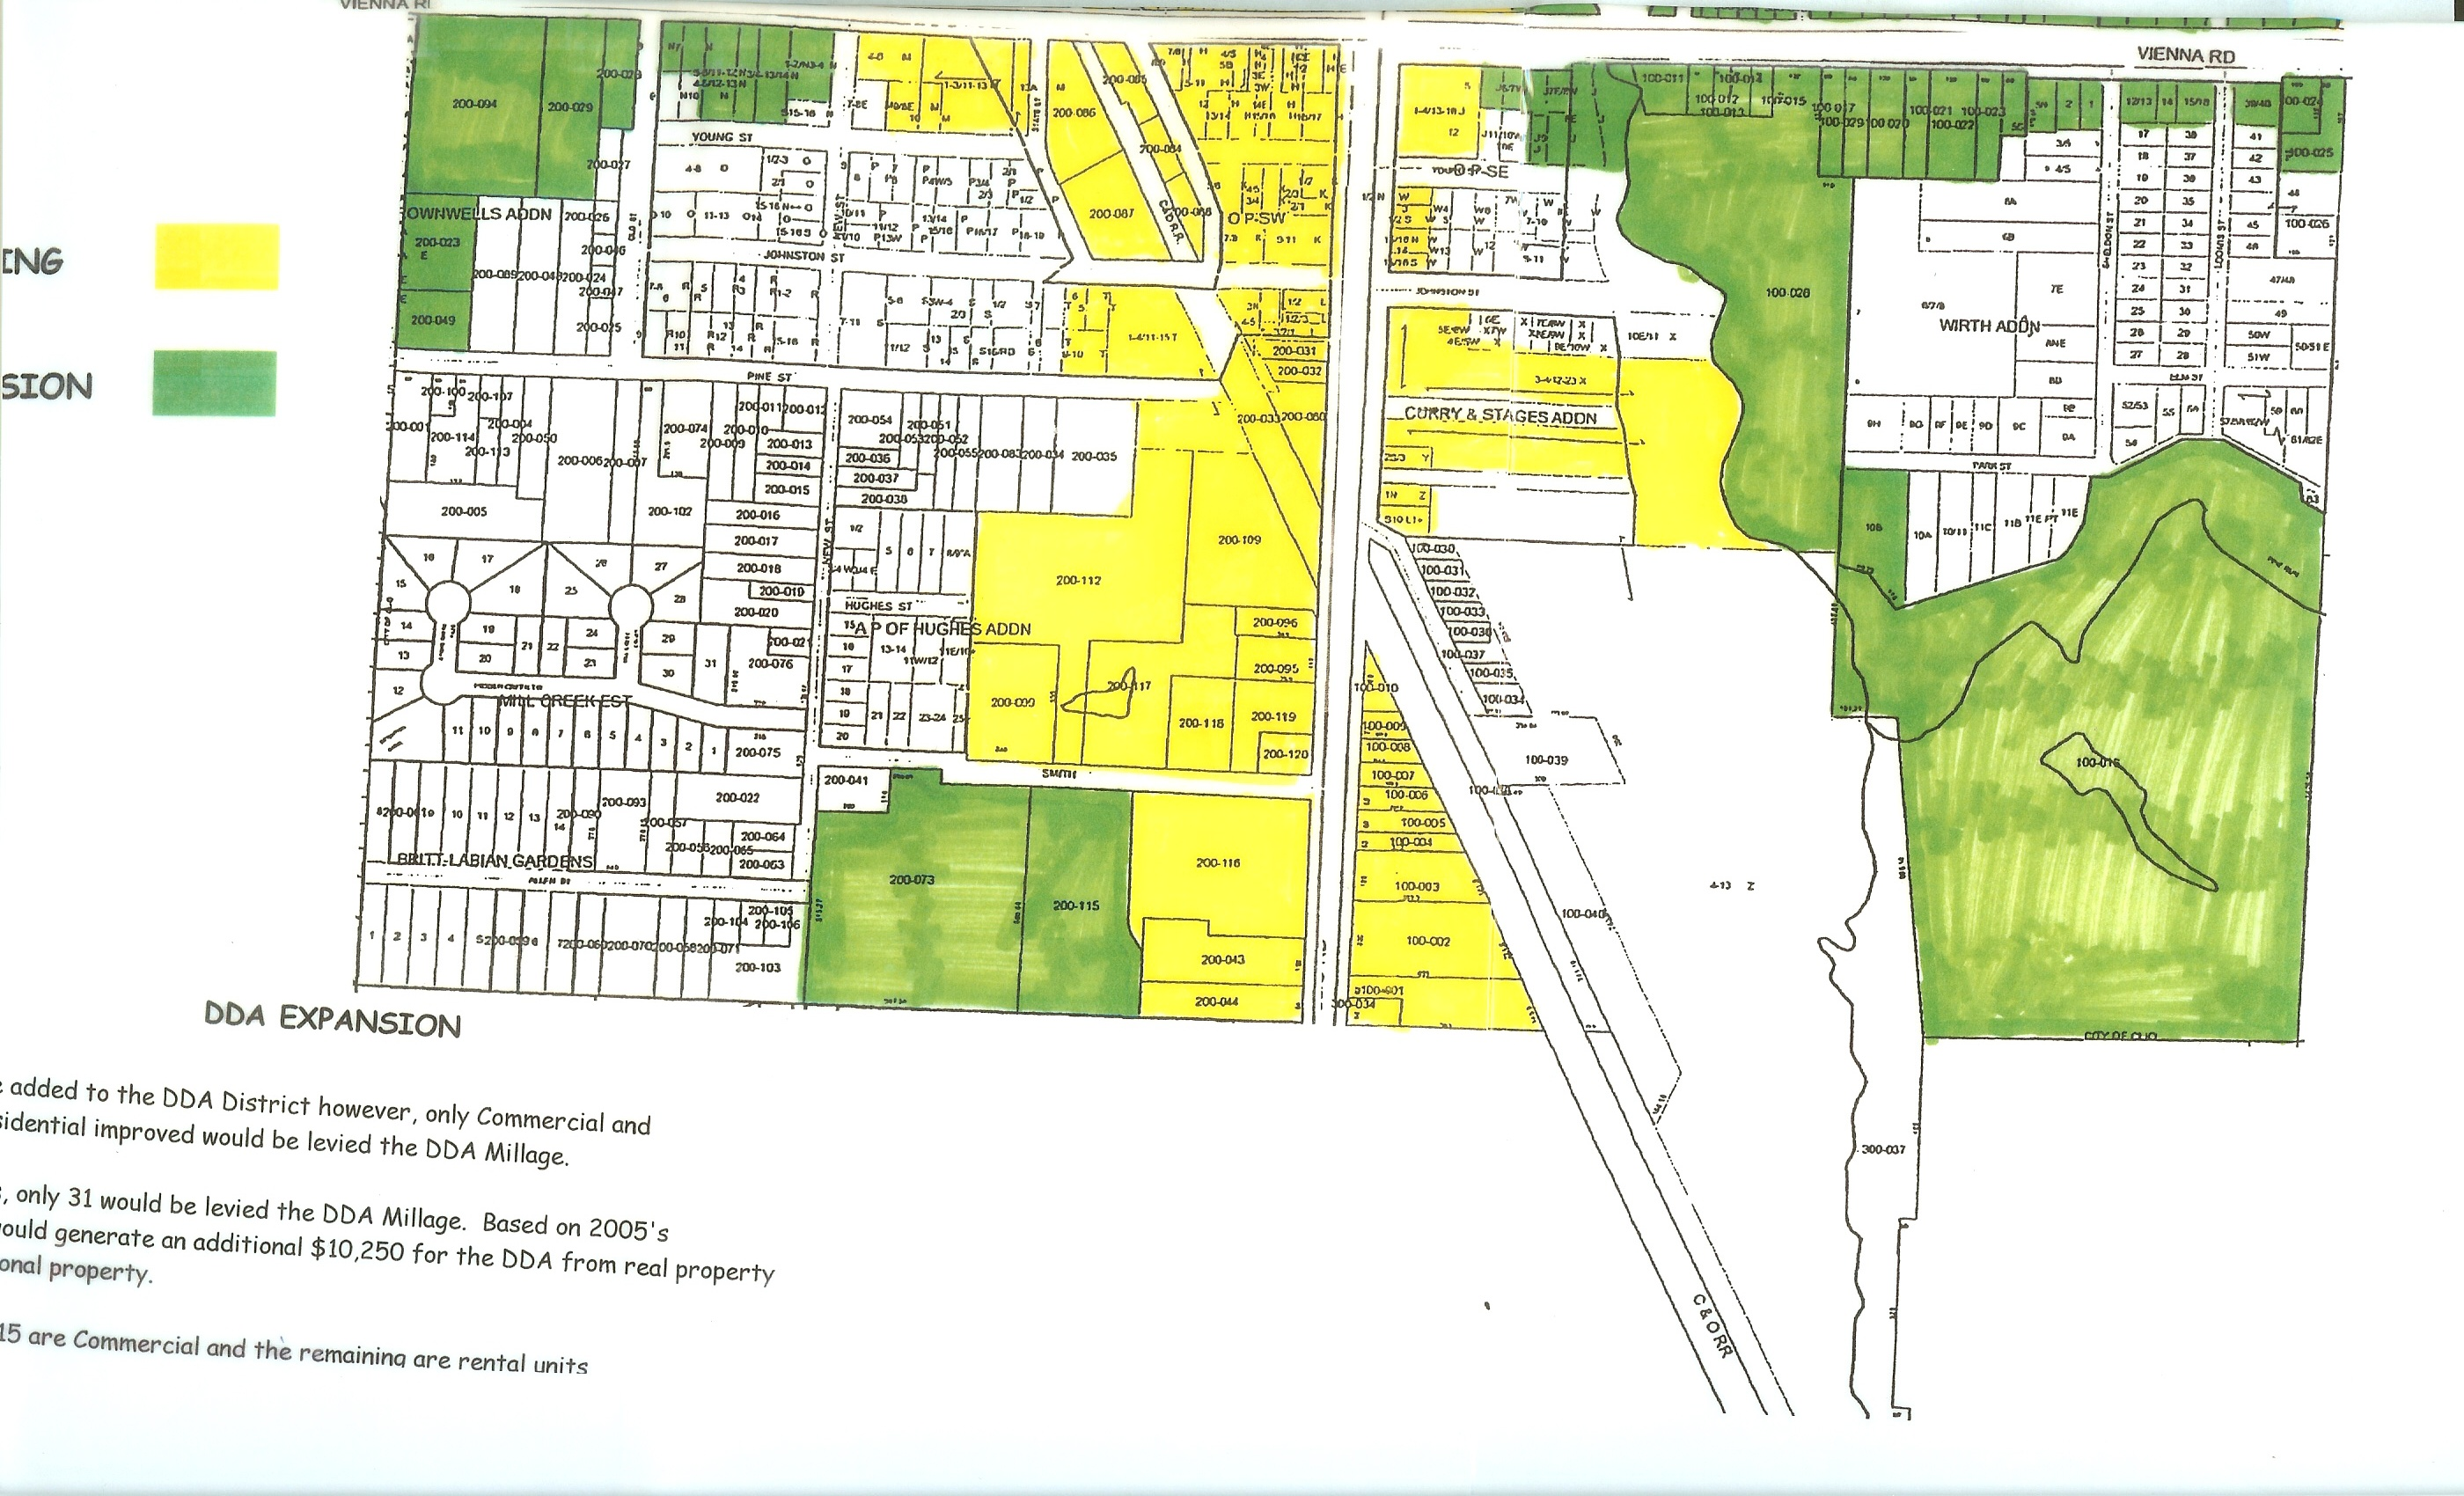 Michigan genesee county clio - Dda District Map South Side Of Vienna